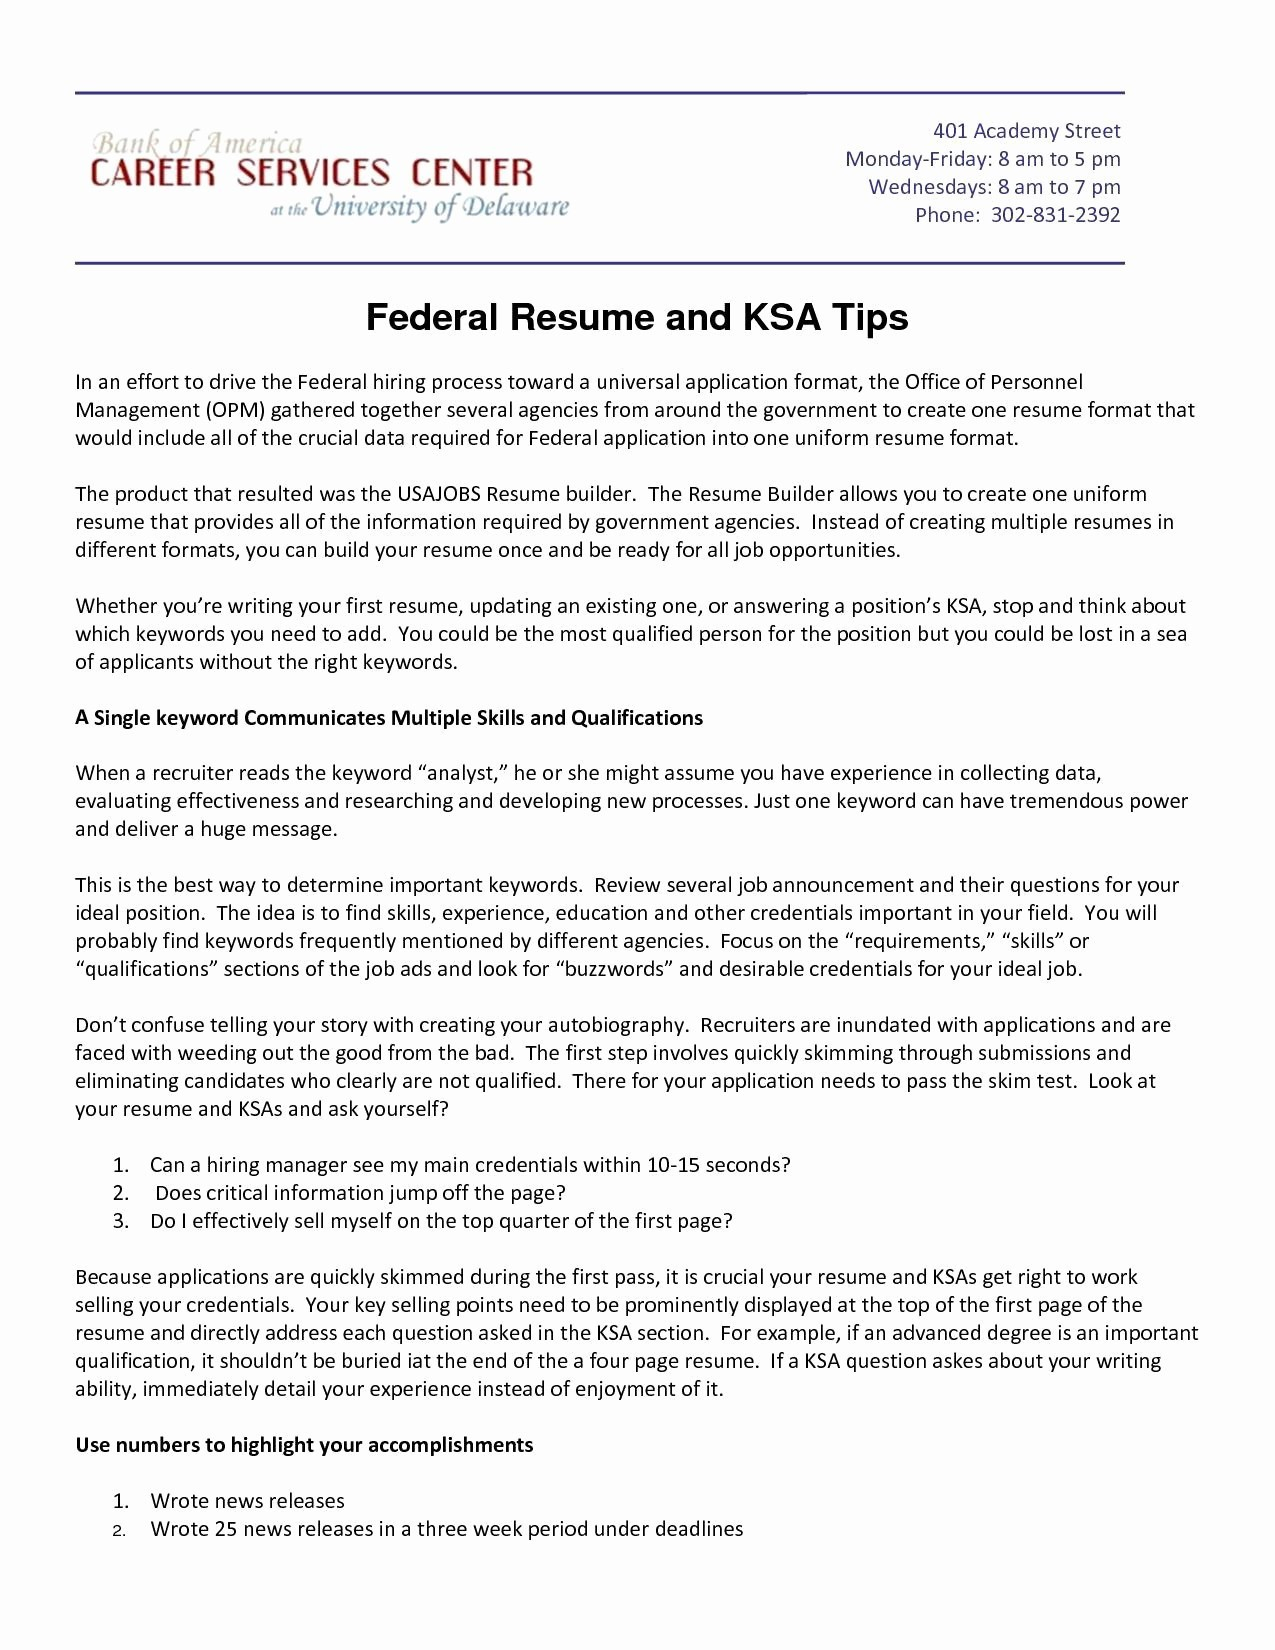 Resume Sites for Recruiters - Resume Builder Website Unique Awesome Best Resume Maker Awesome